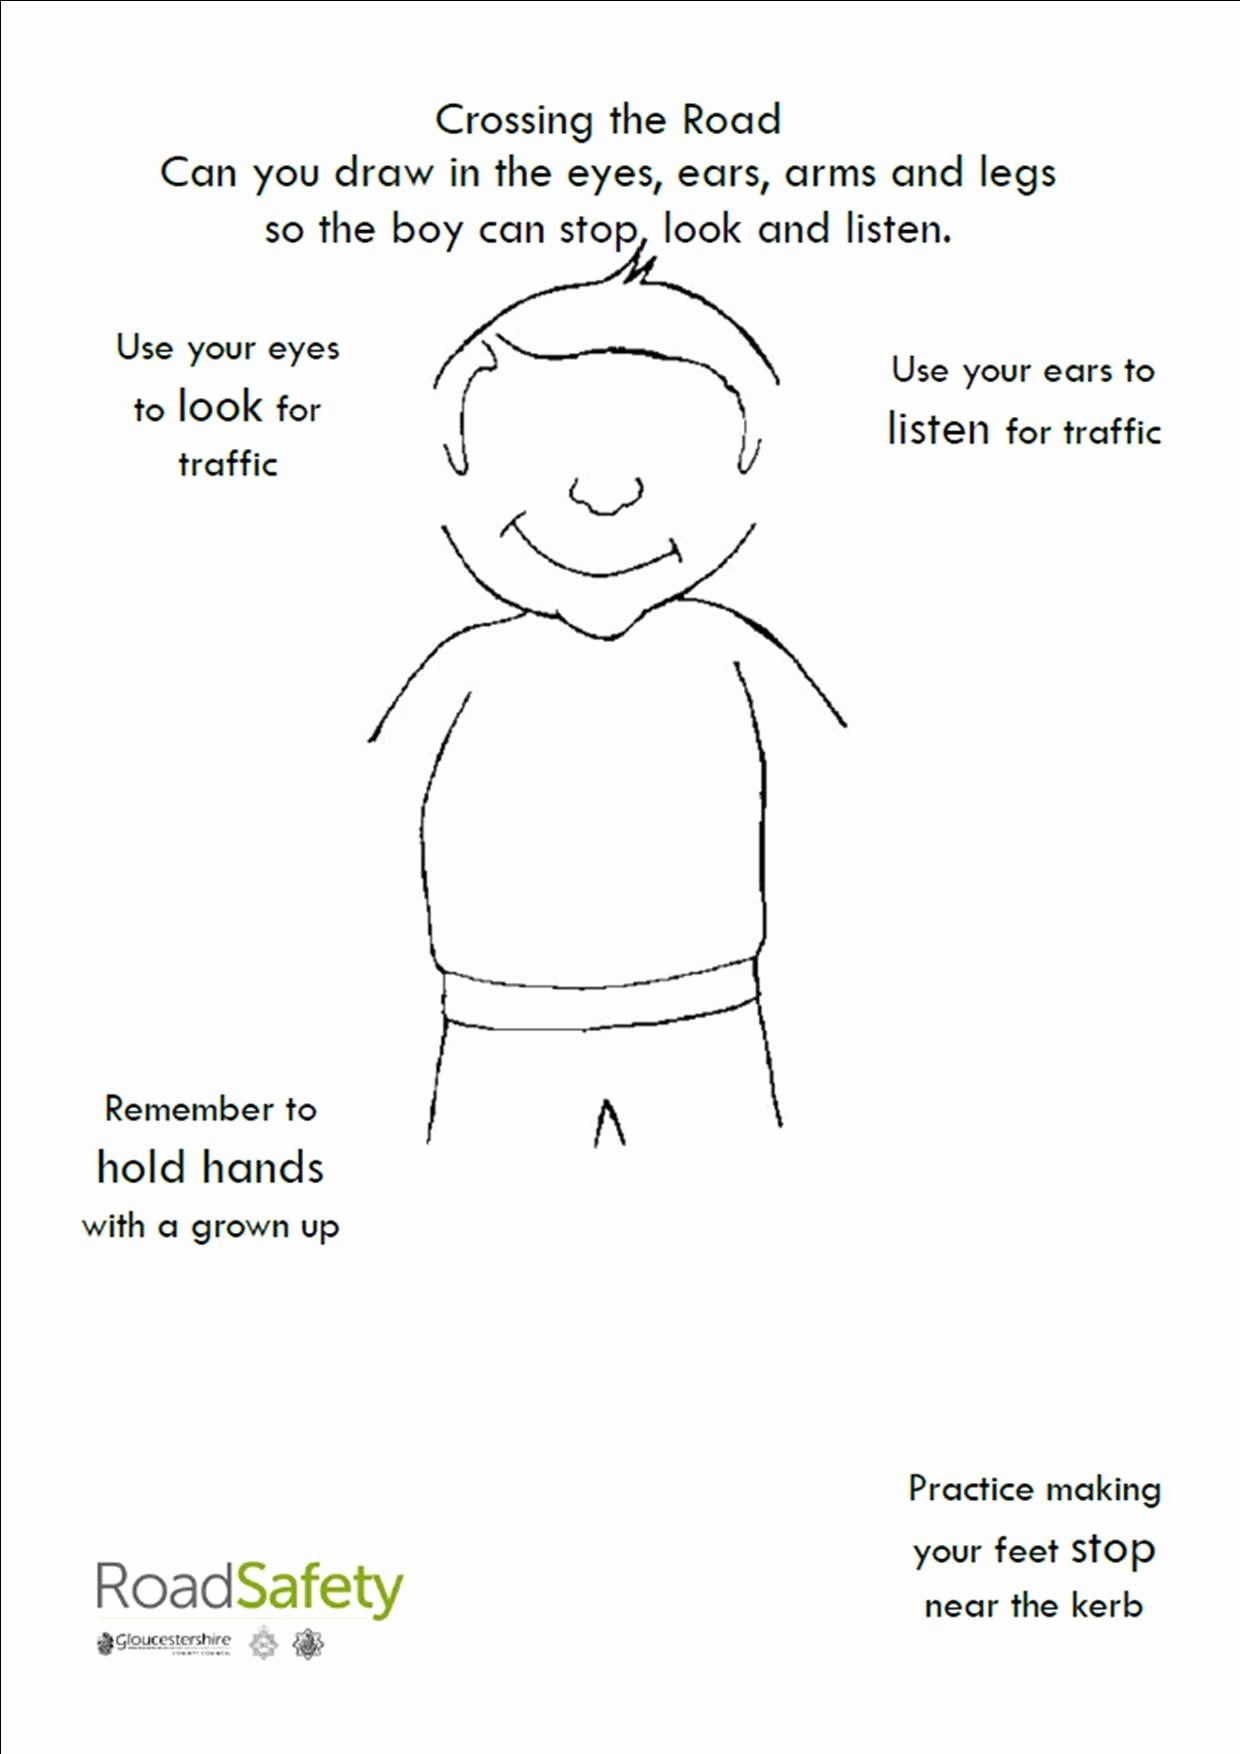 Road Safety Worksheets for Preschoolers Ideas Crossing the Street